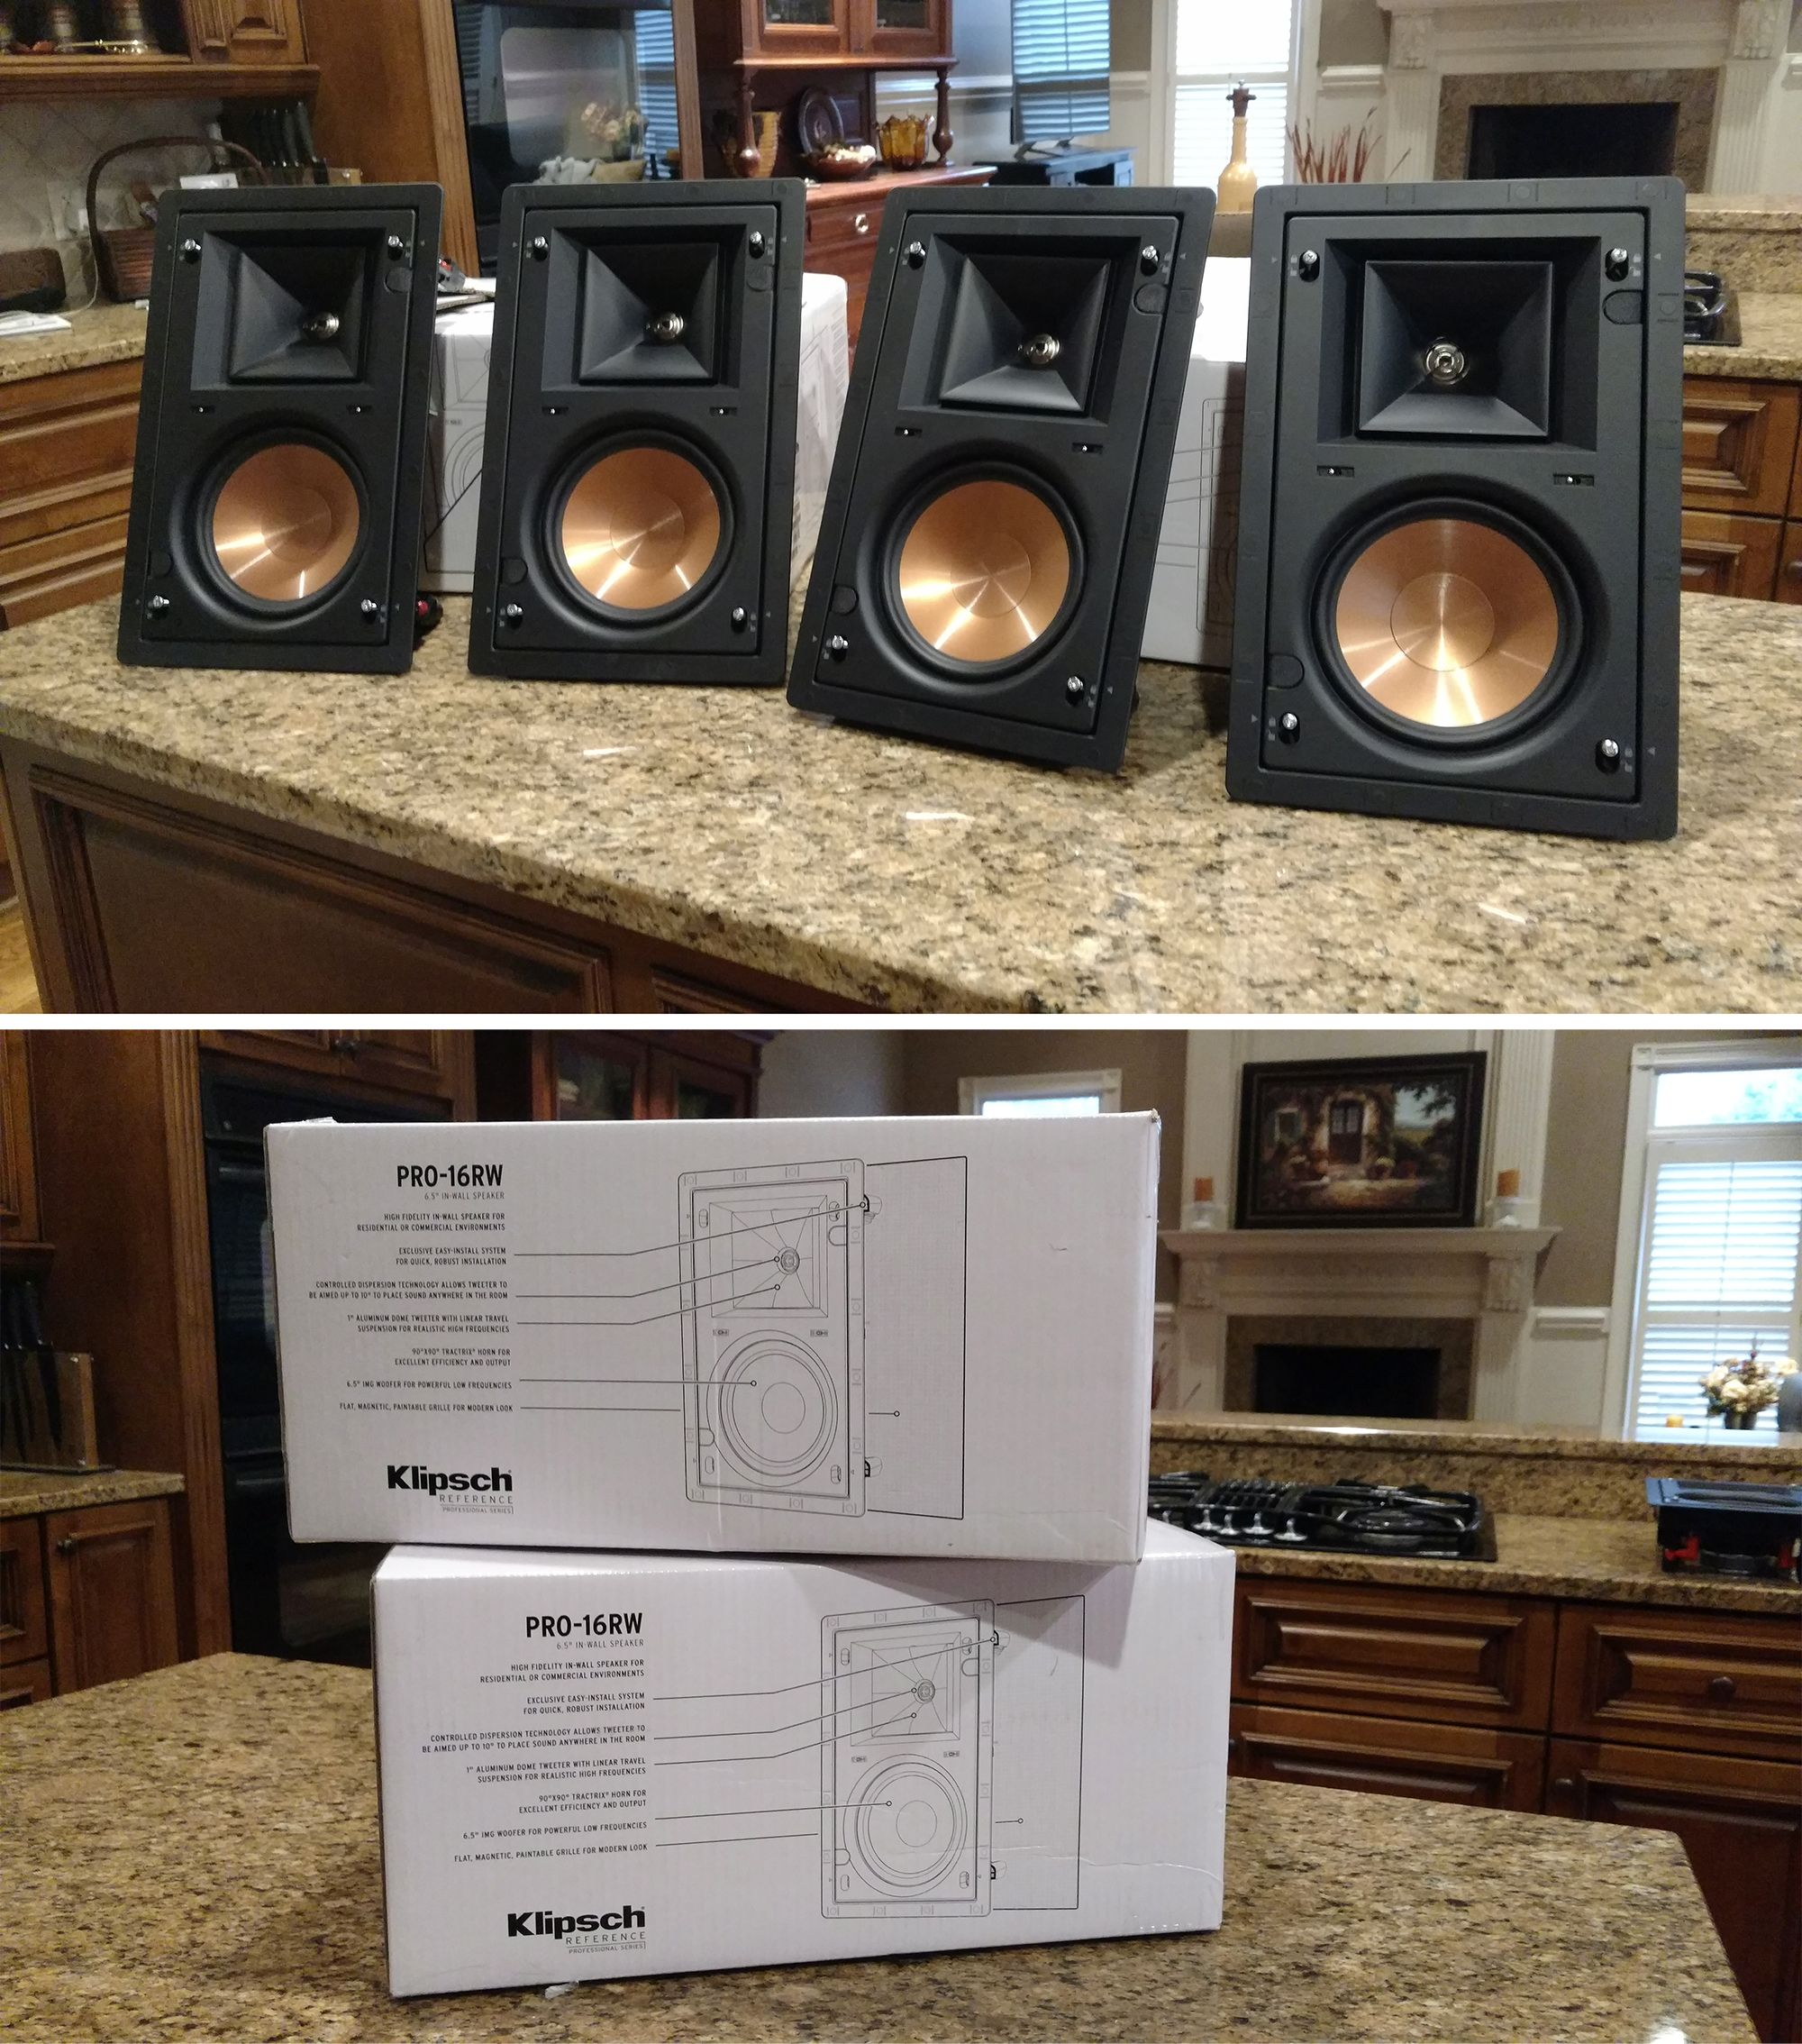 klipsch pro 16 rw in wall speakers for 299 99 at grand central wiring in greenville sc call 864 881 1675  [ 2000 x 2268 Pixel ]